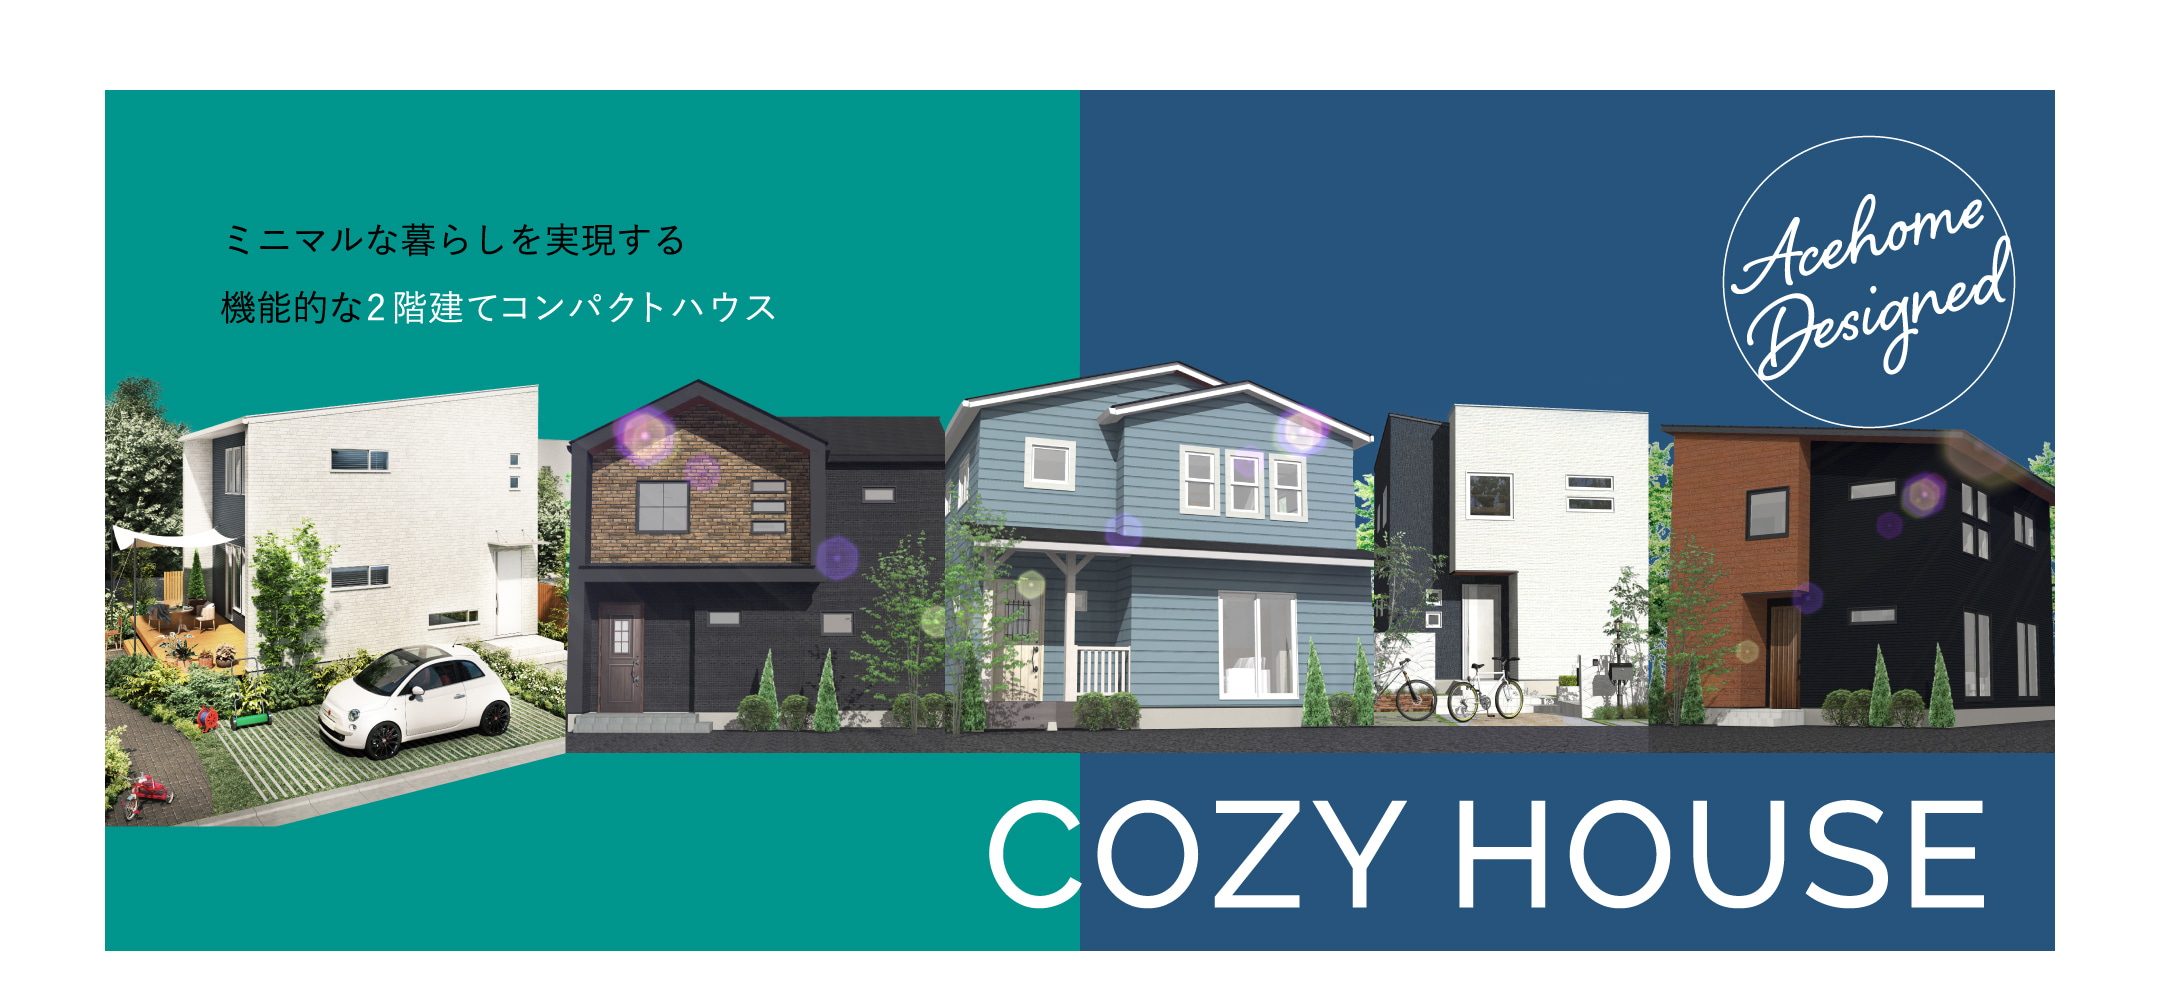 ACEHOME DESIGNED COZY HOUSE